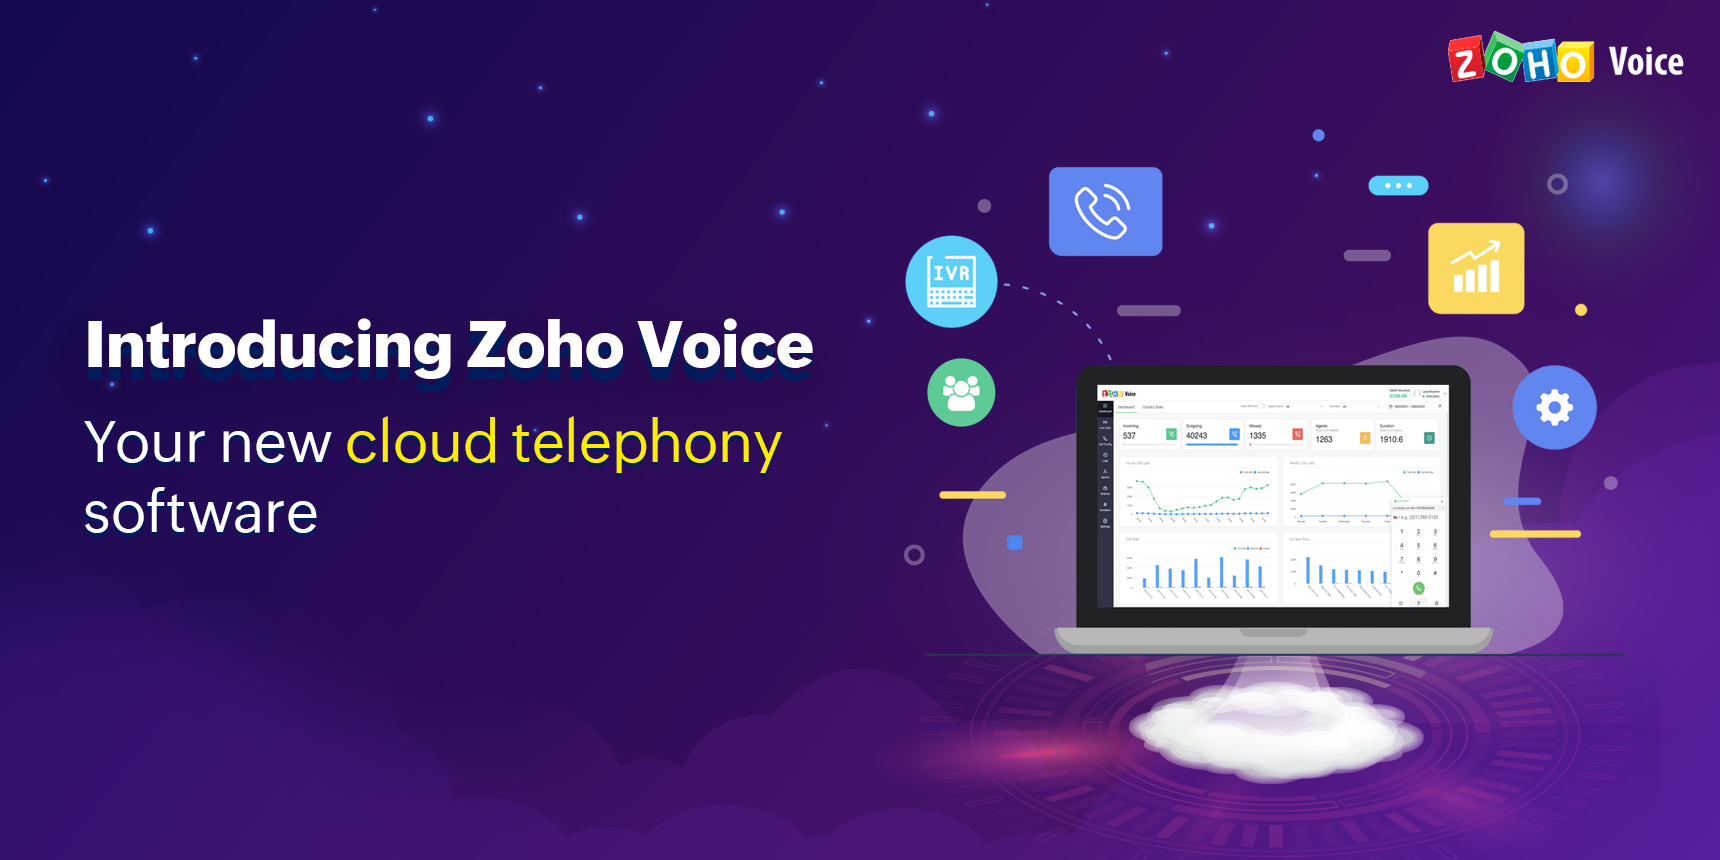 Launching Zoho Voice: Handle calls better with our new smart business phone software.